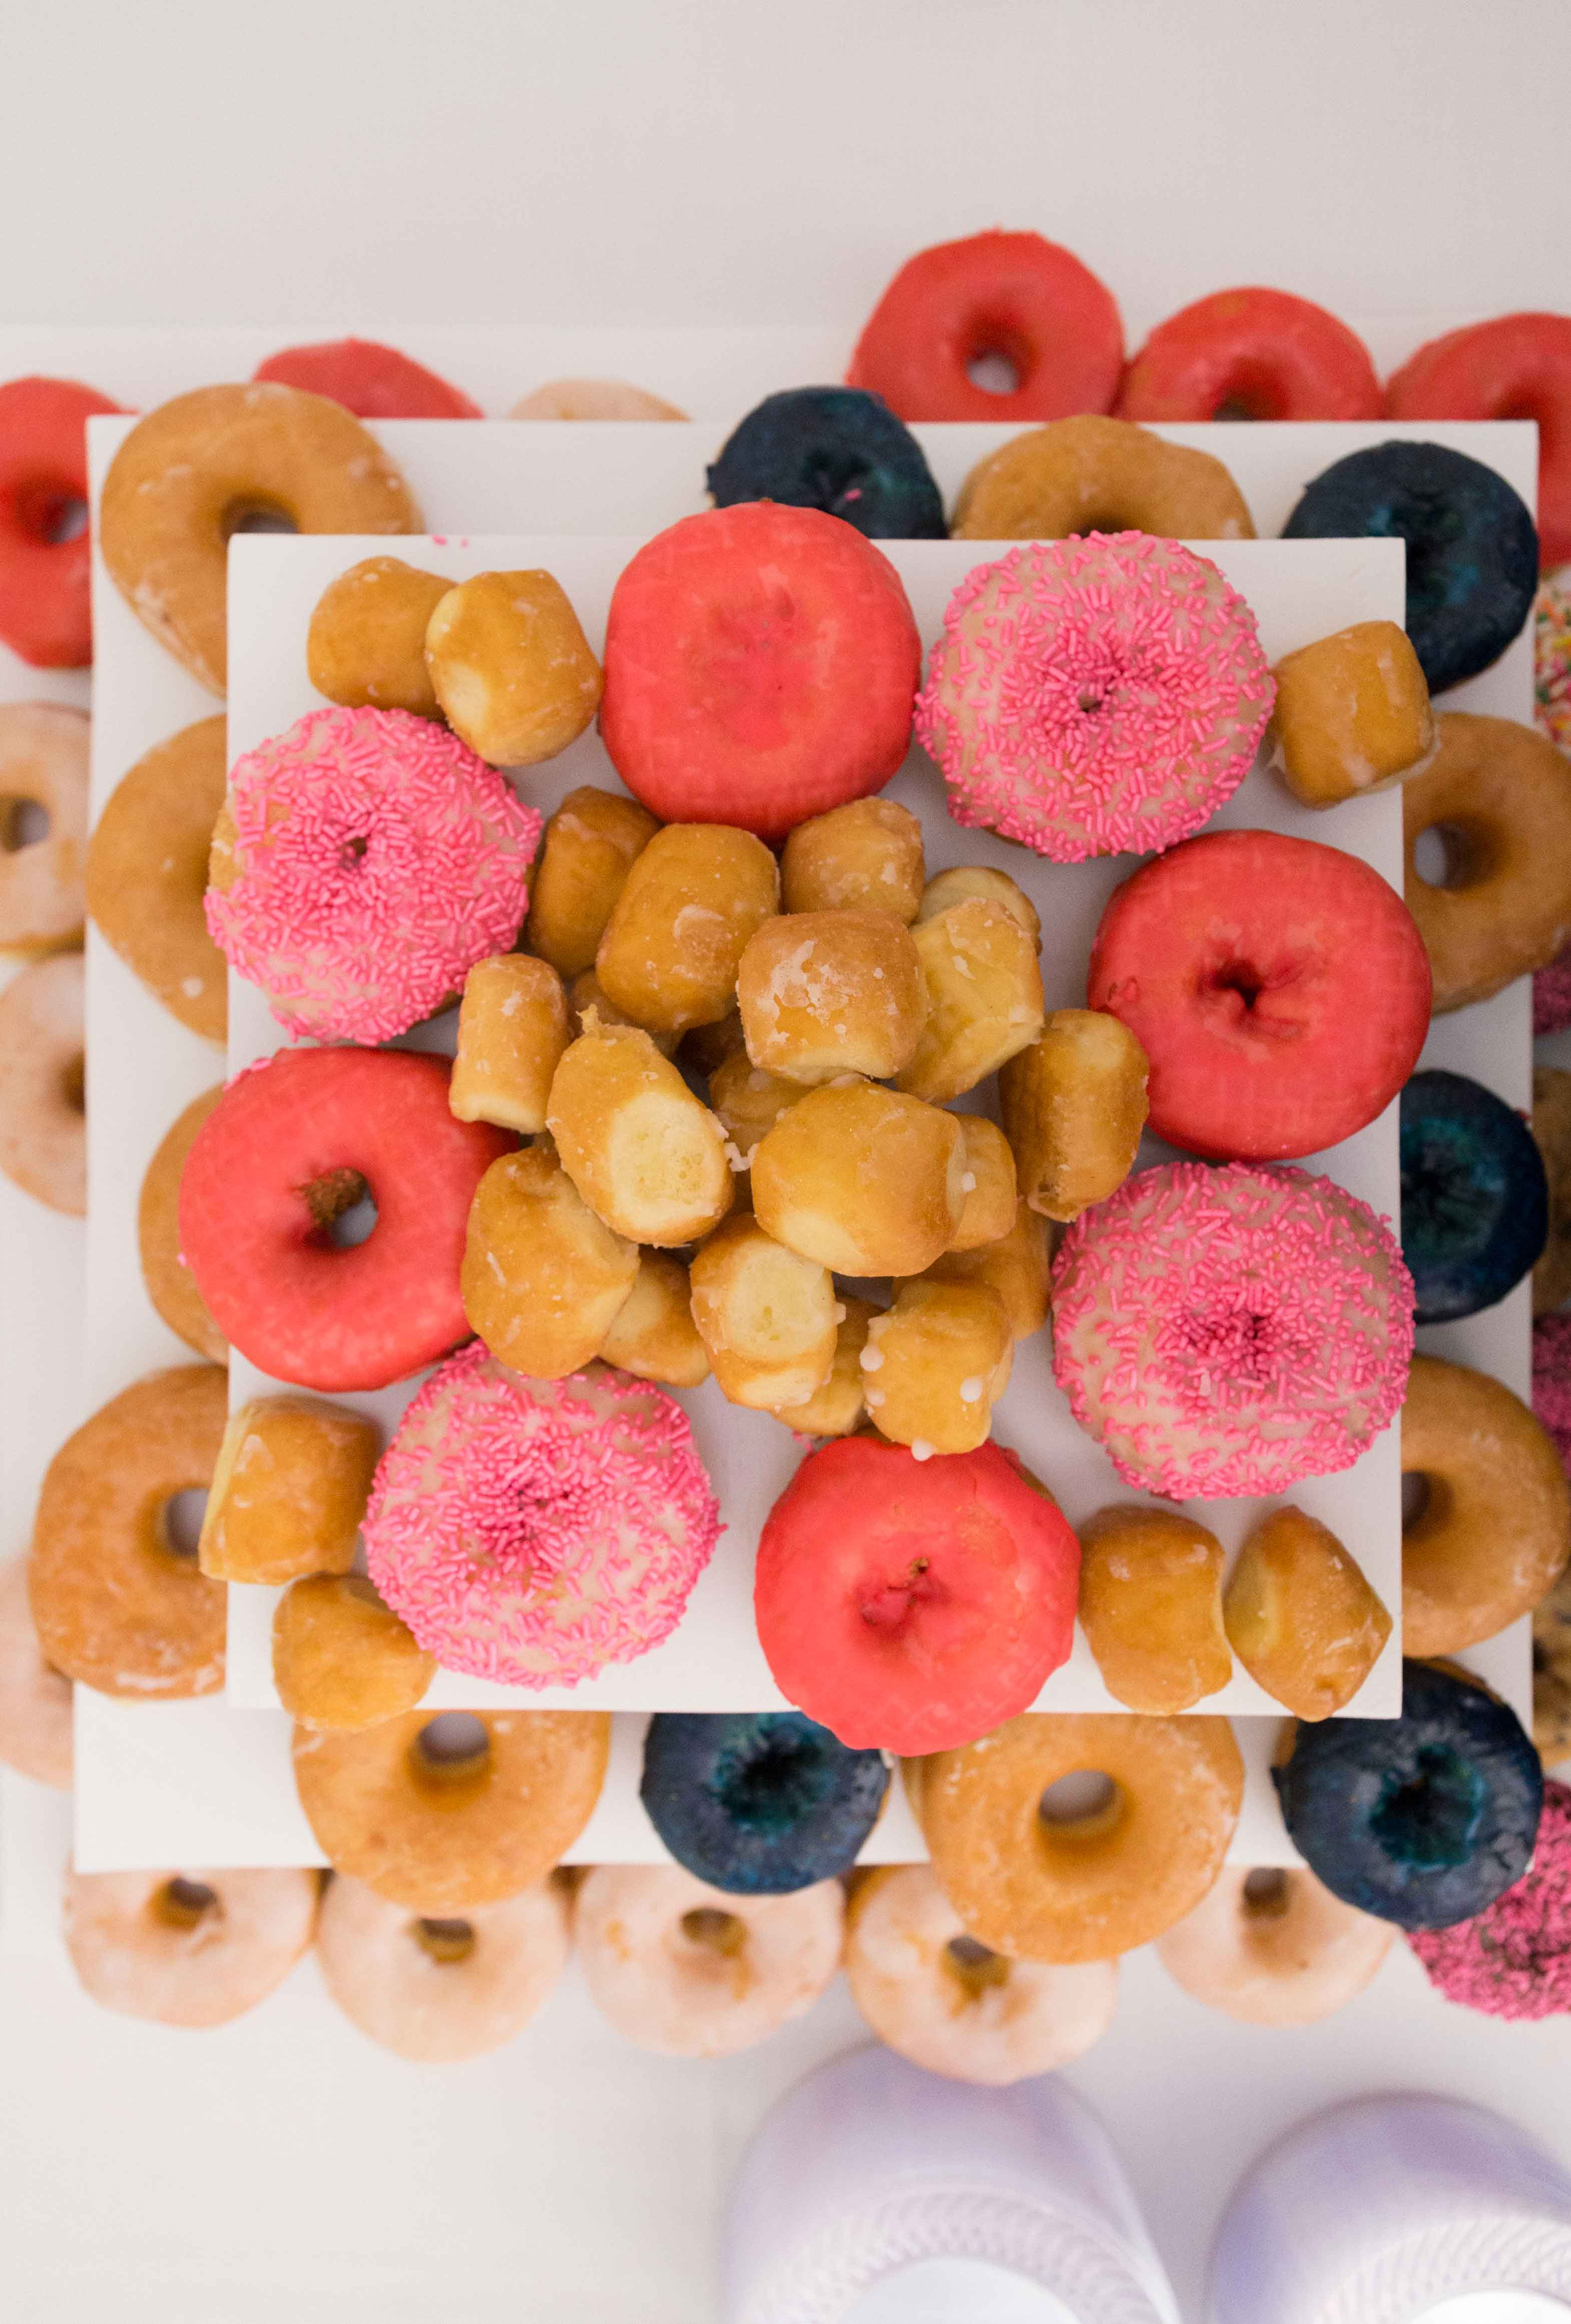 National donut day three tier tray cake stand with donuts and donut holes doughnut